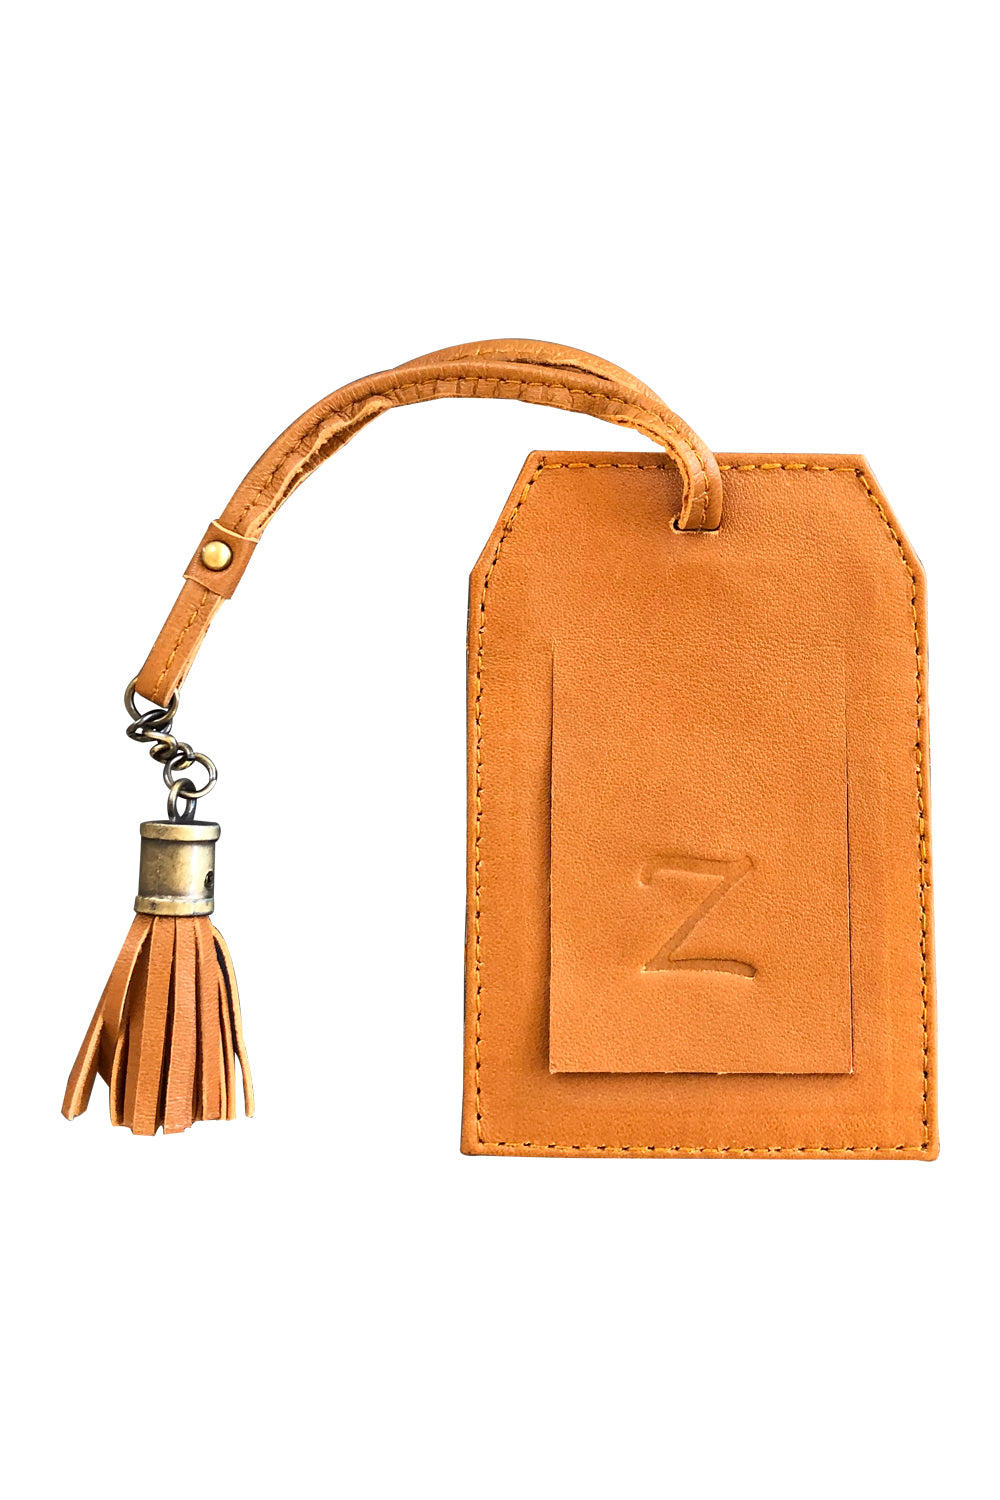 Luggage Tag - Zahir Lifestyle